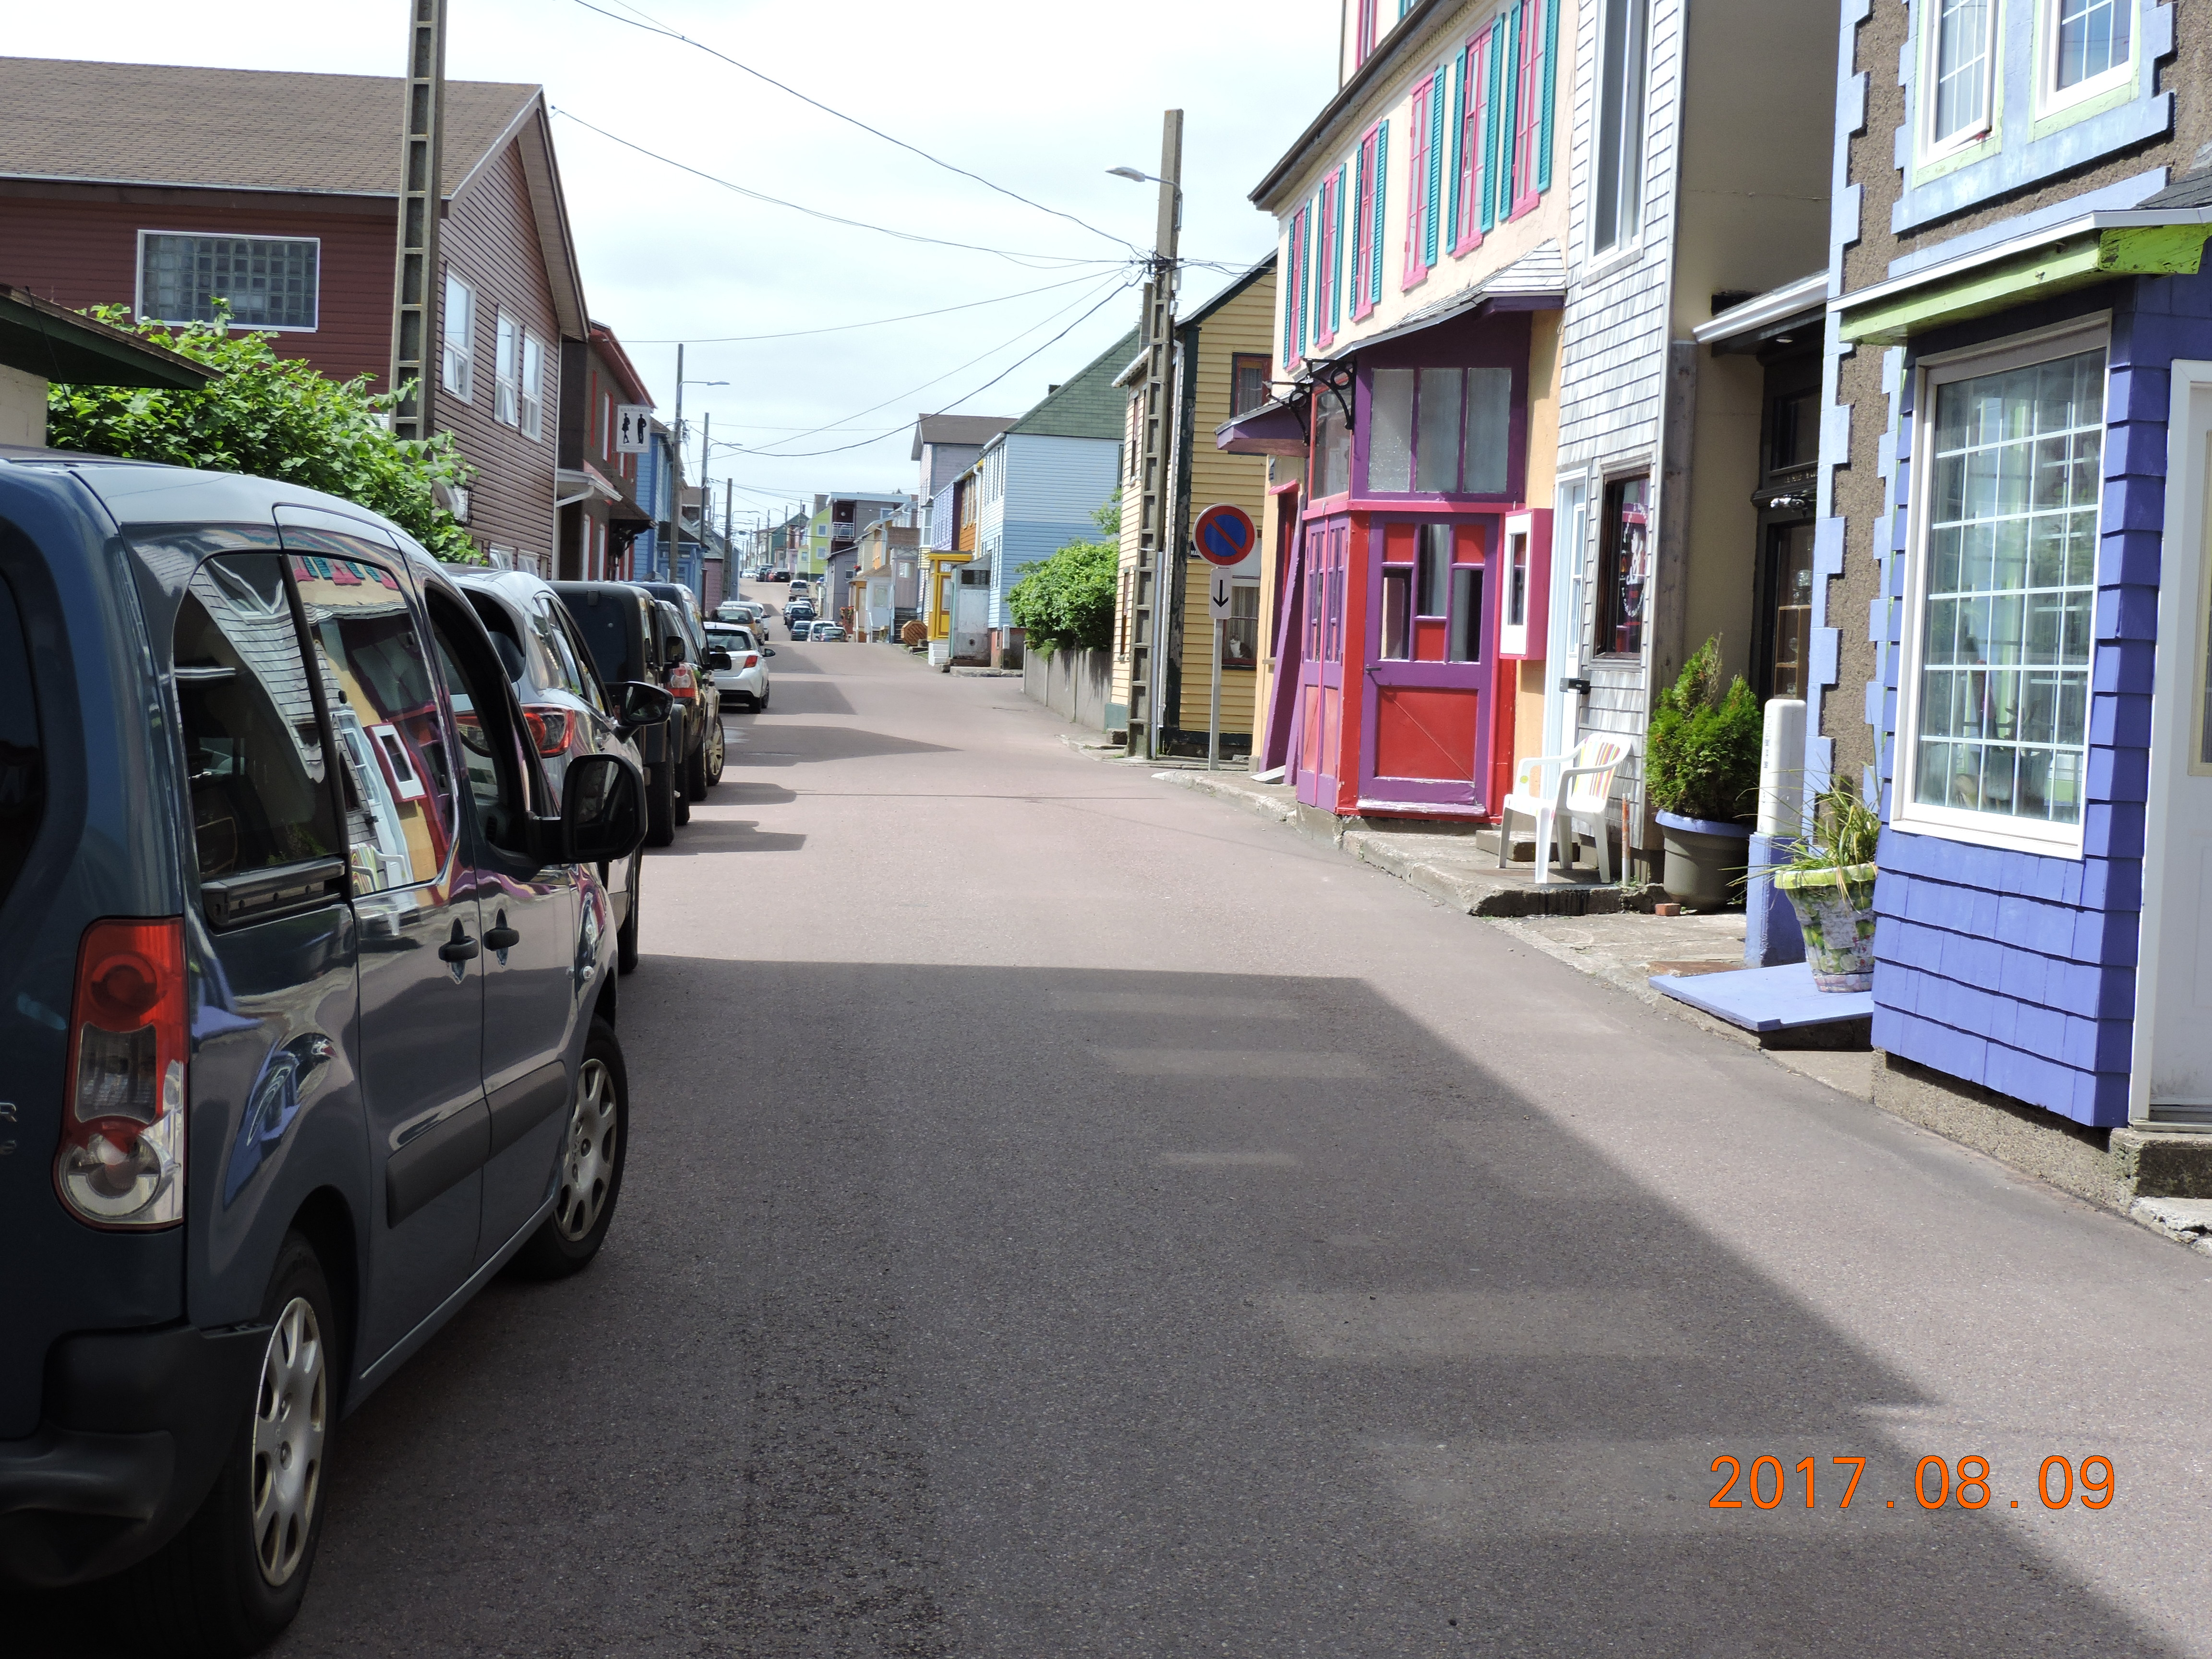 City of St. Pierre. Streets